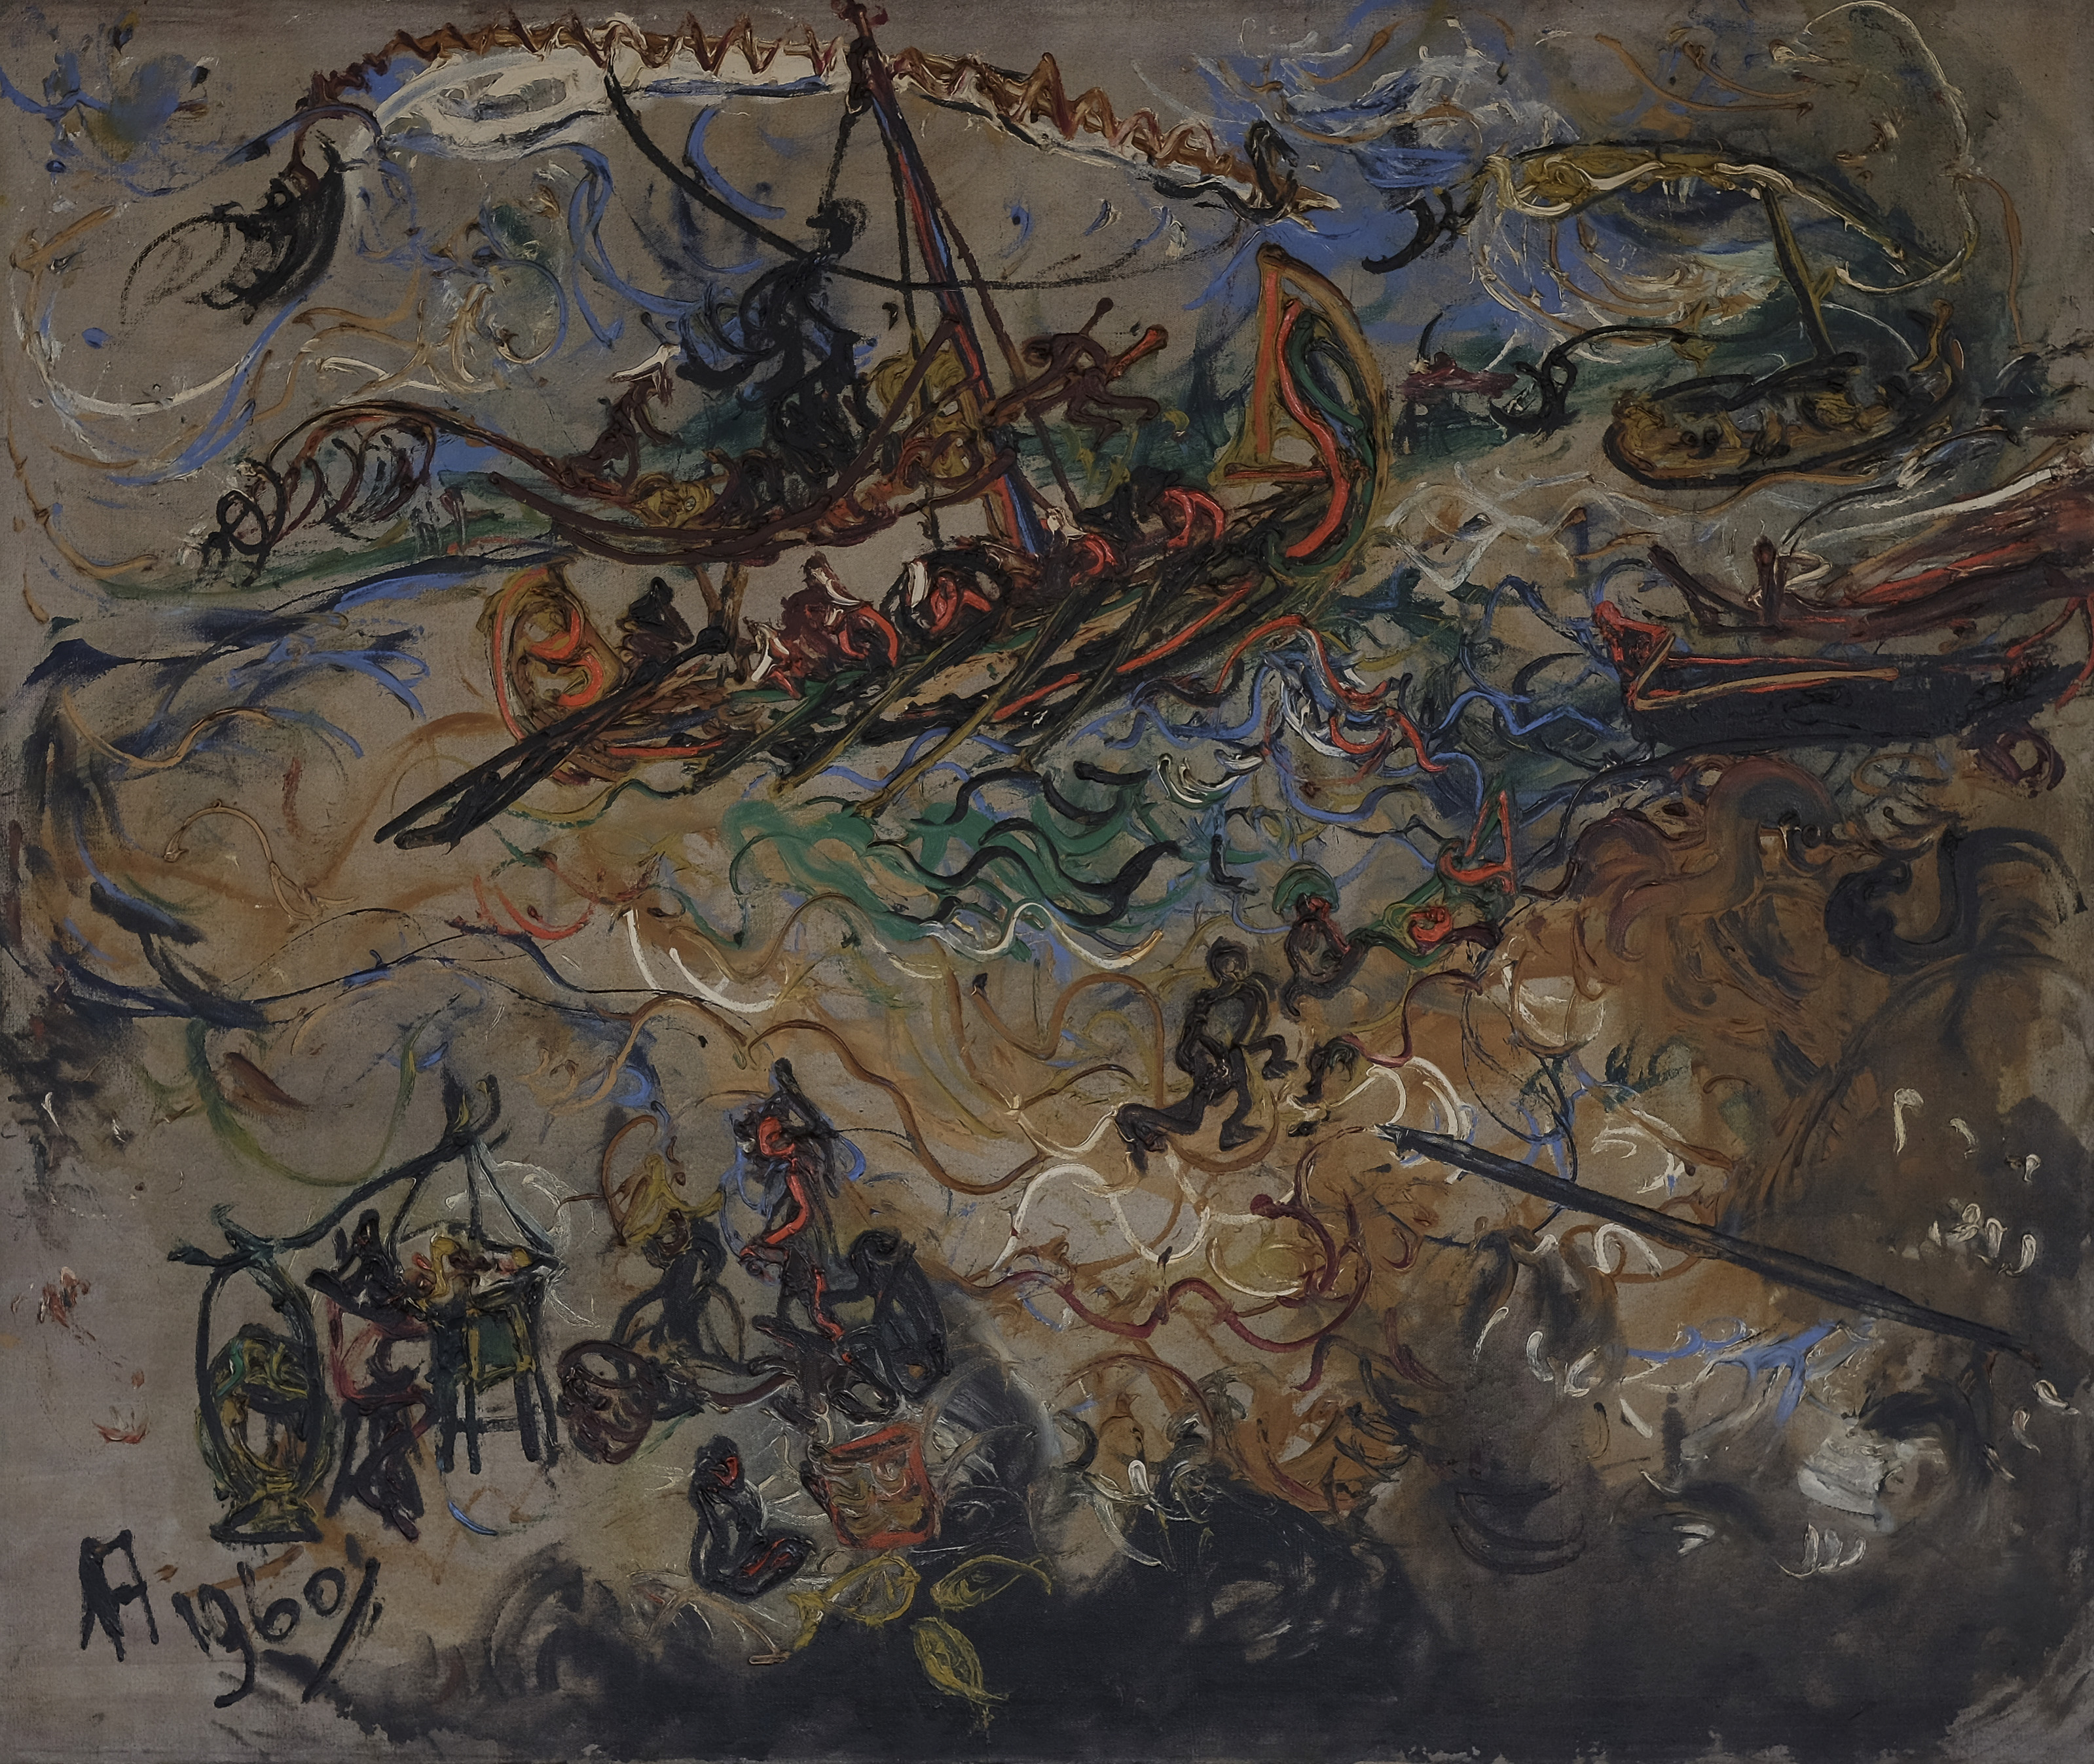 Affandi, Pemandangan Laut Jawa (Seascape of the Java Sea), 1960, 104 x 124 cm